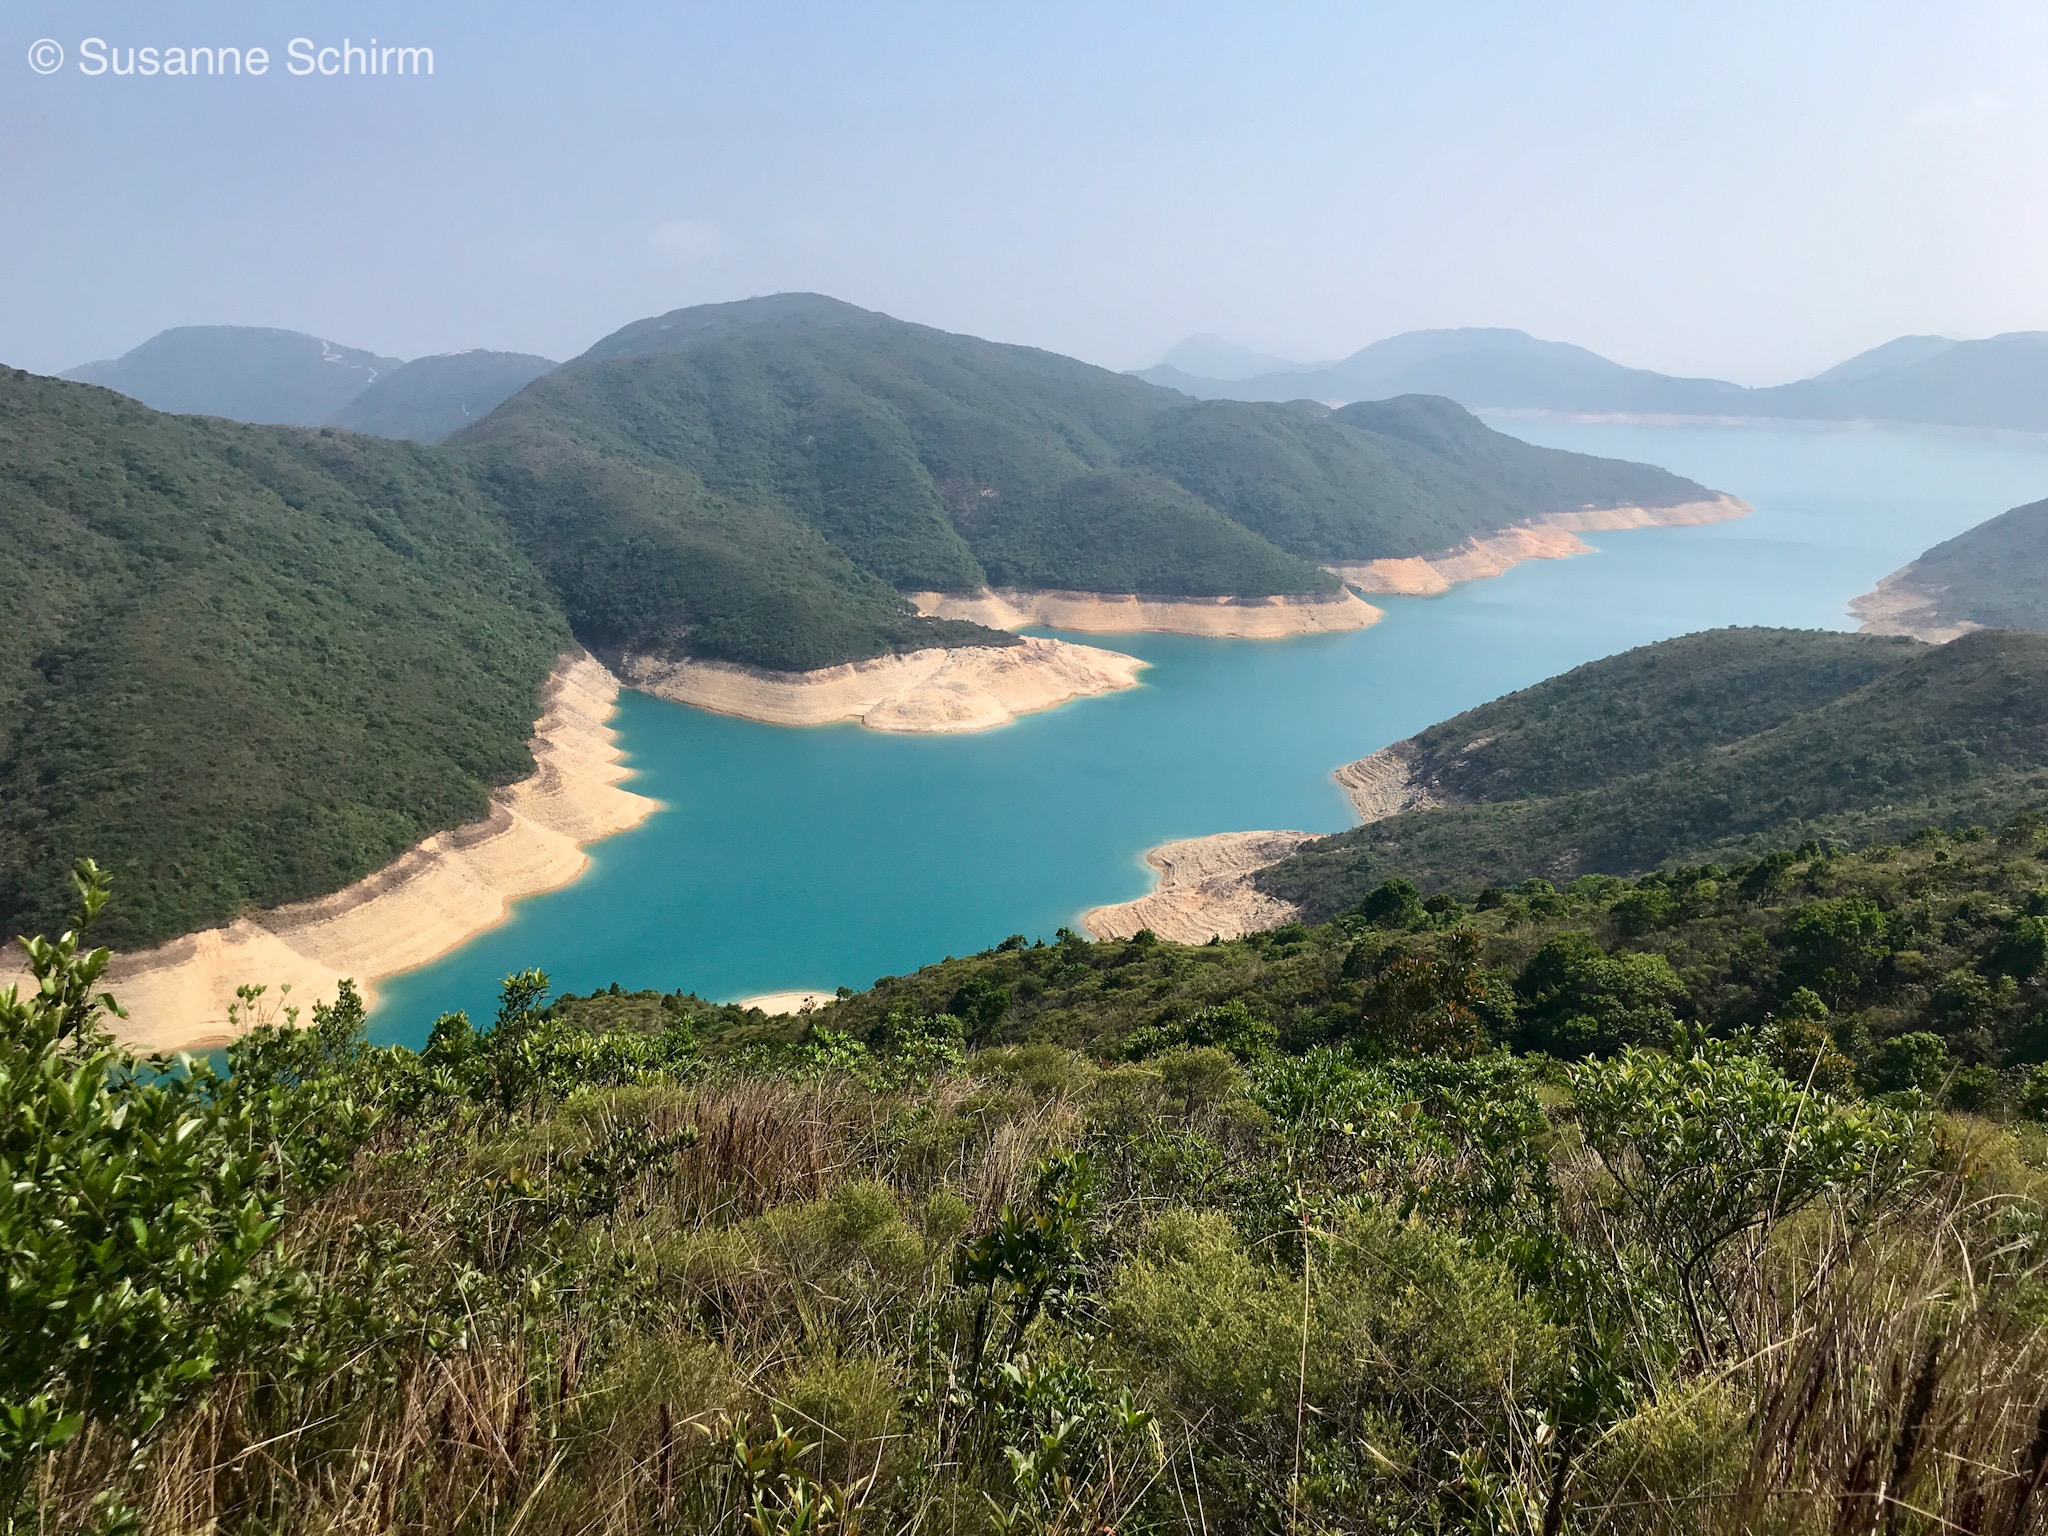 Hong Kong High Island Reservoir